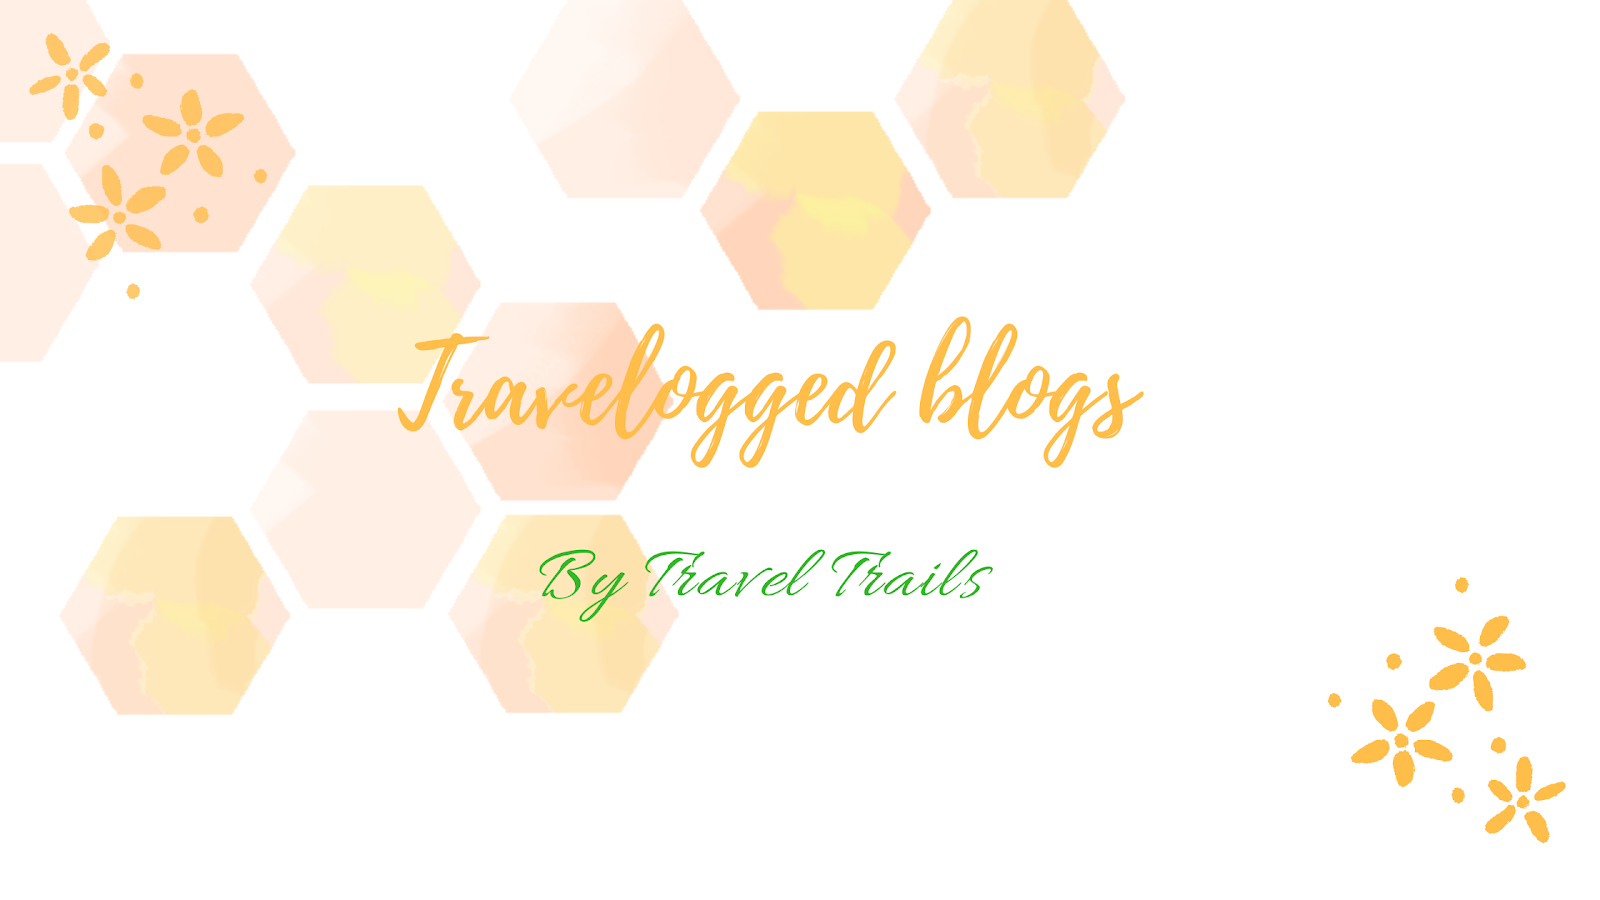 Travelogged Blogs